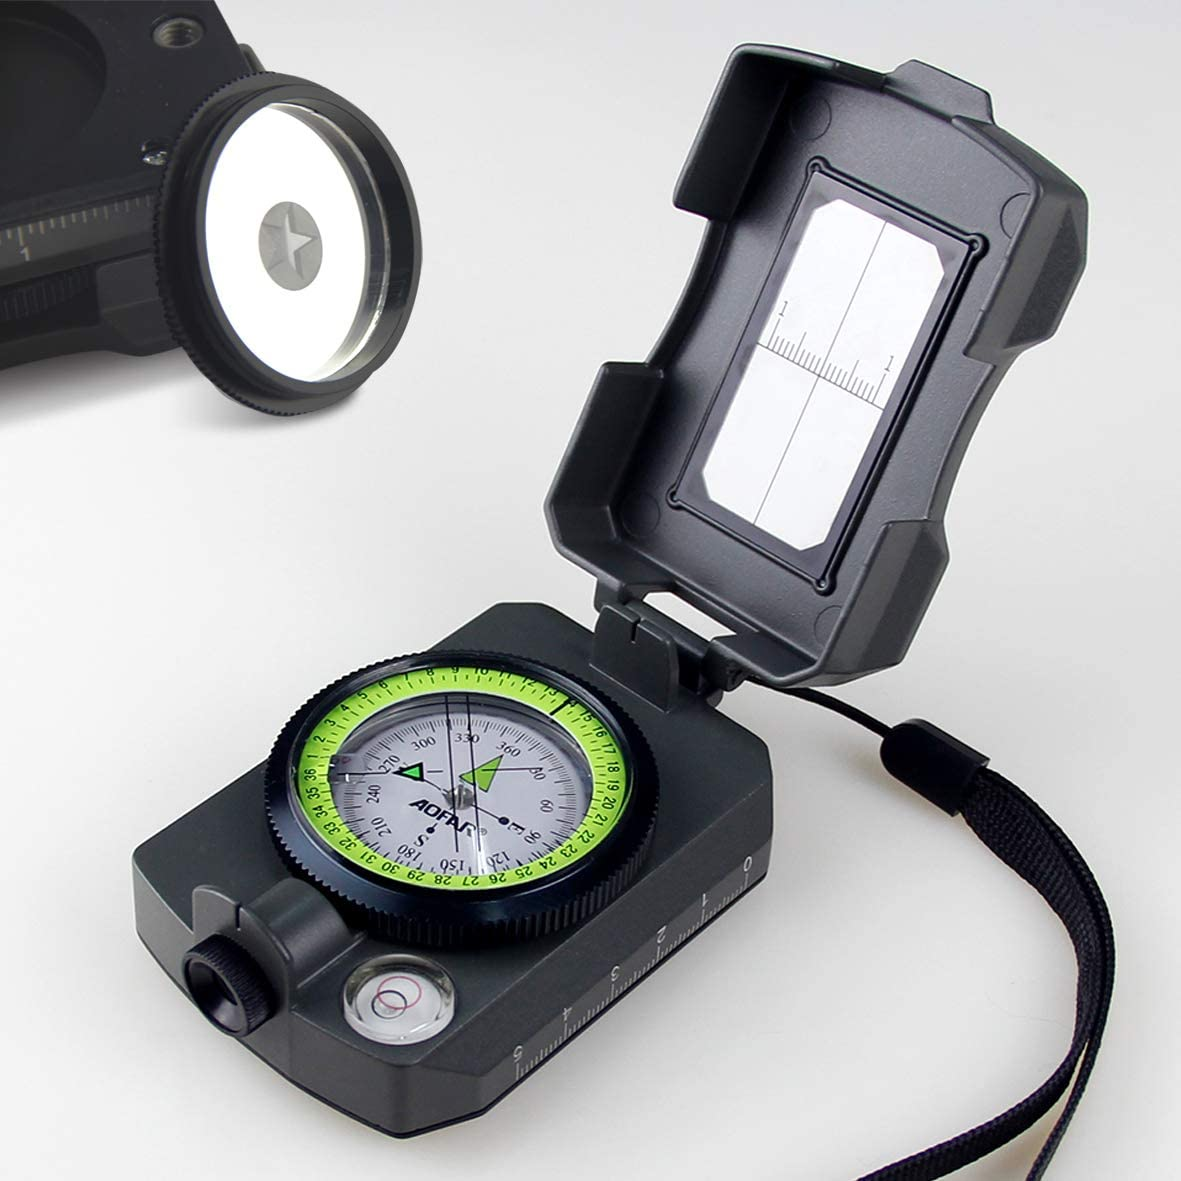 AOFAR AF-4090 Multifunctional Military Compass Waterproof and Shakeproof with Signal Mirror,Whistle,Fishing Hook and Line for Camping,Boy Scount,Geology Activities Boating